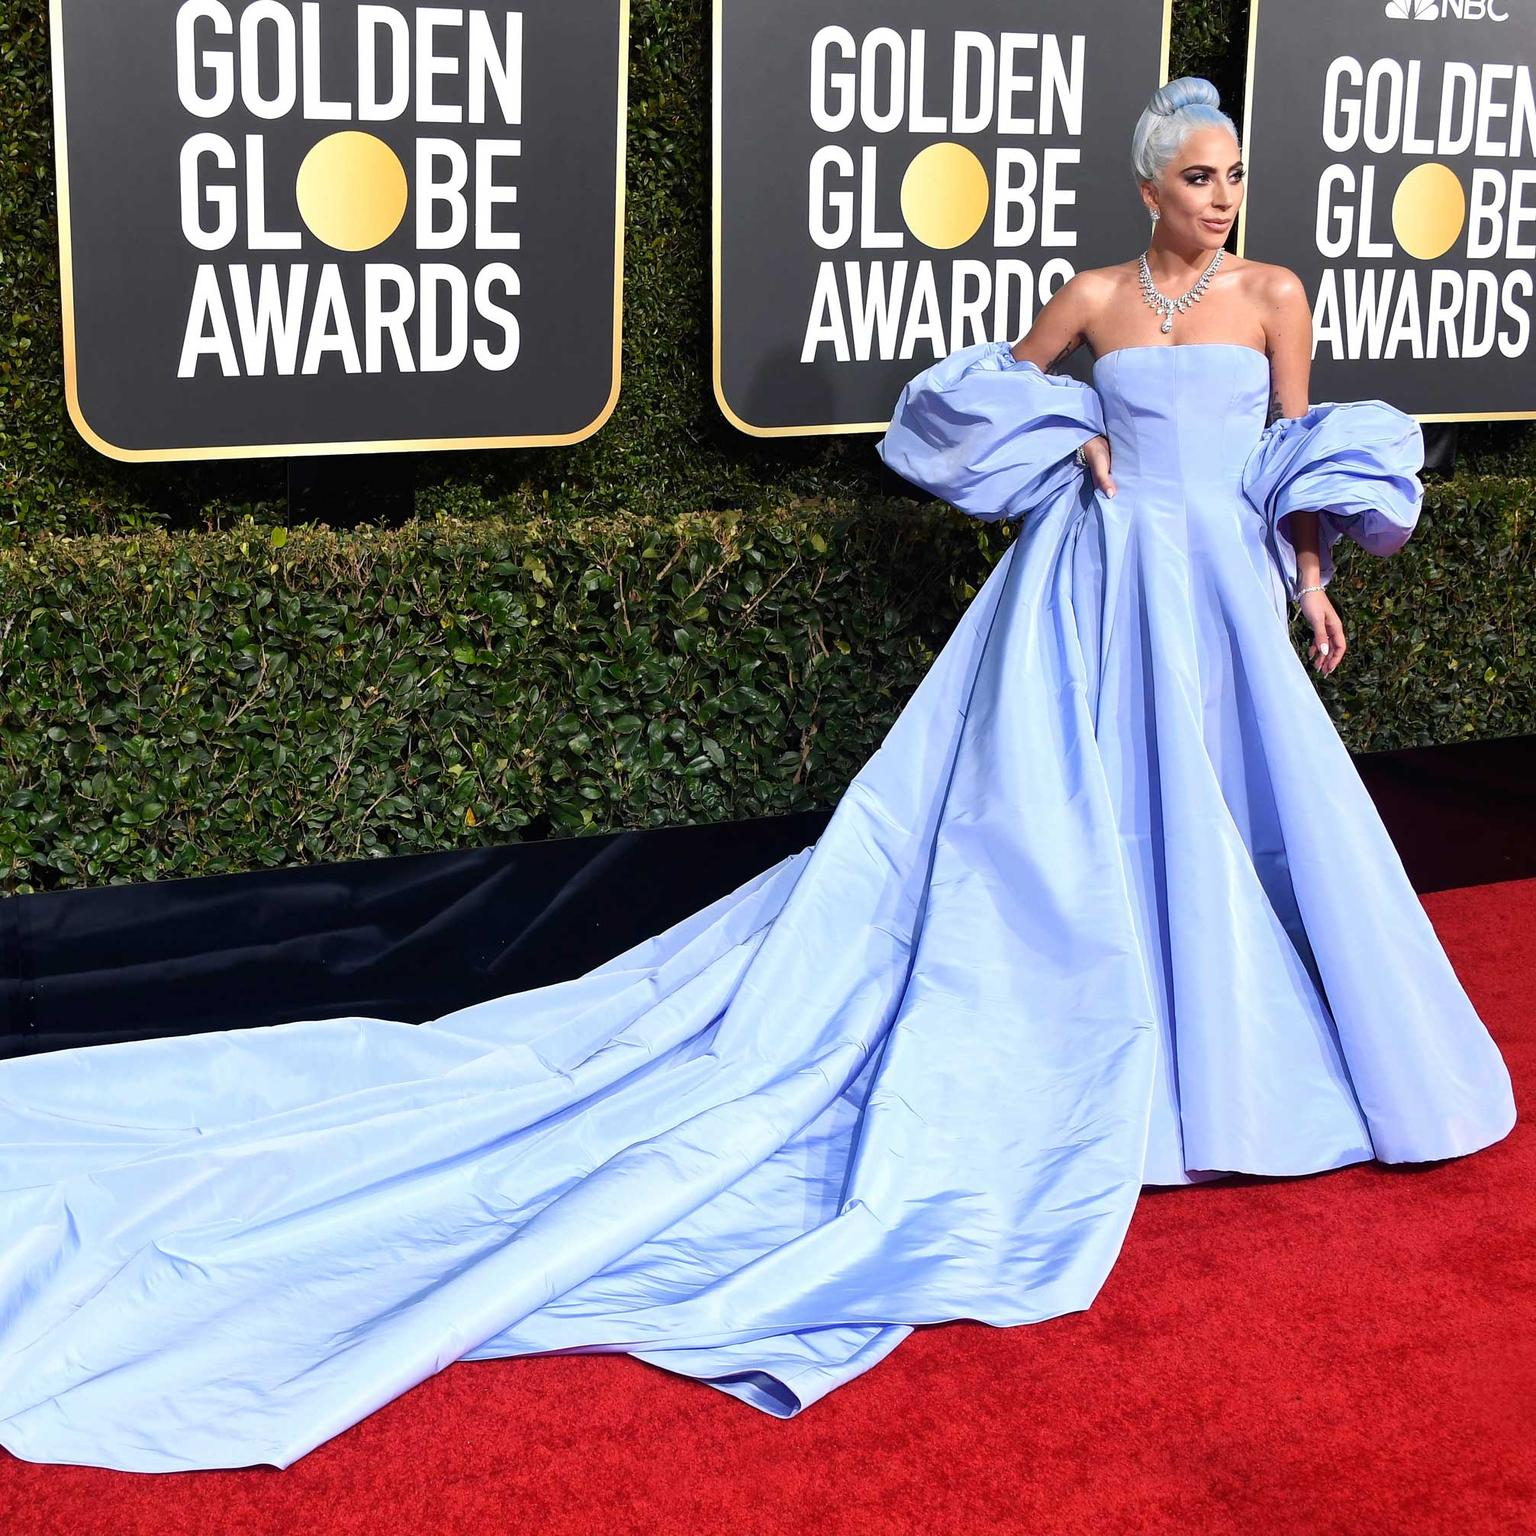 Lady Gaga Tiffany diamonds Golden Globes 2019